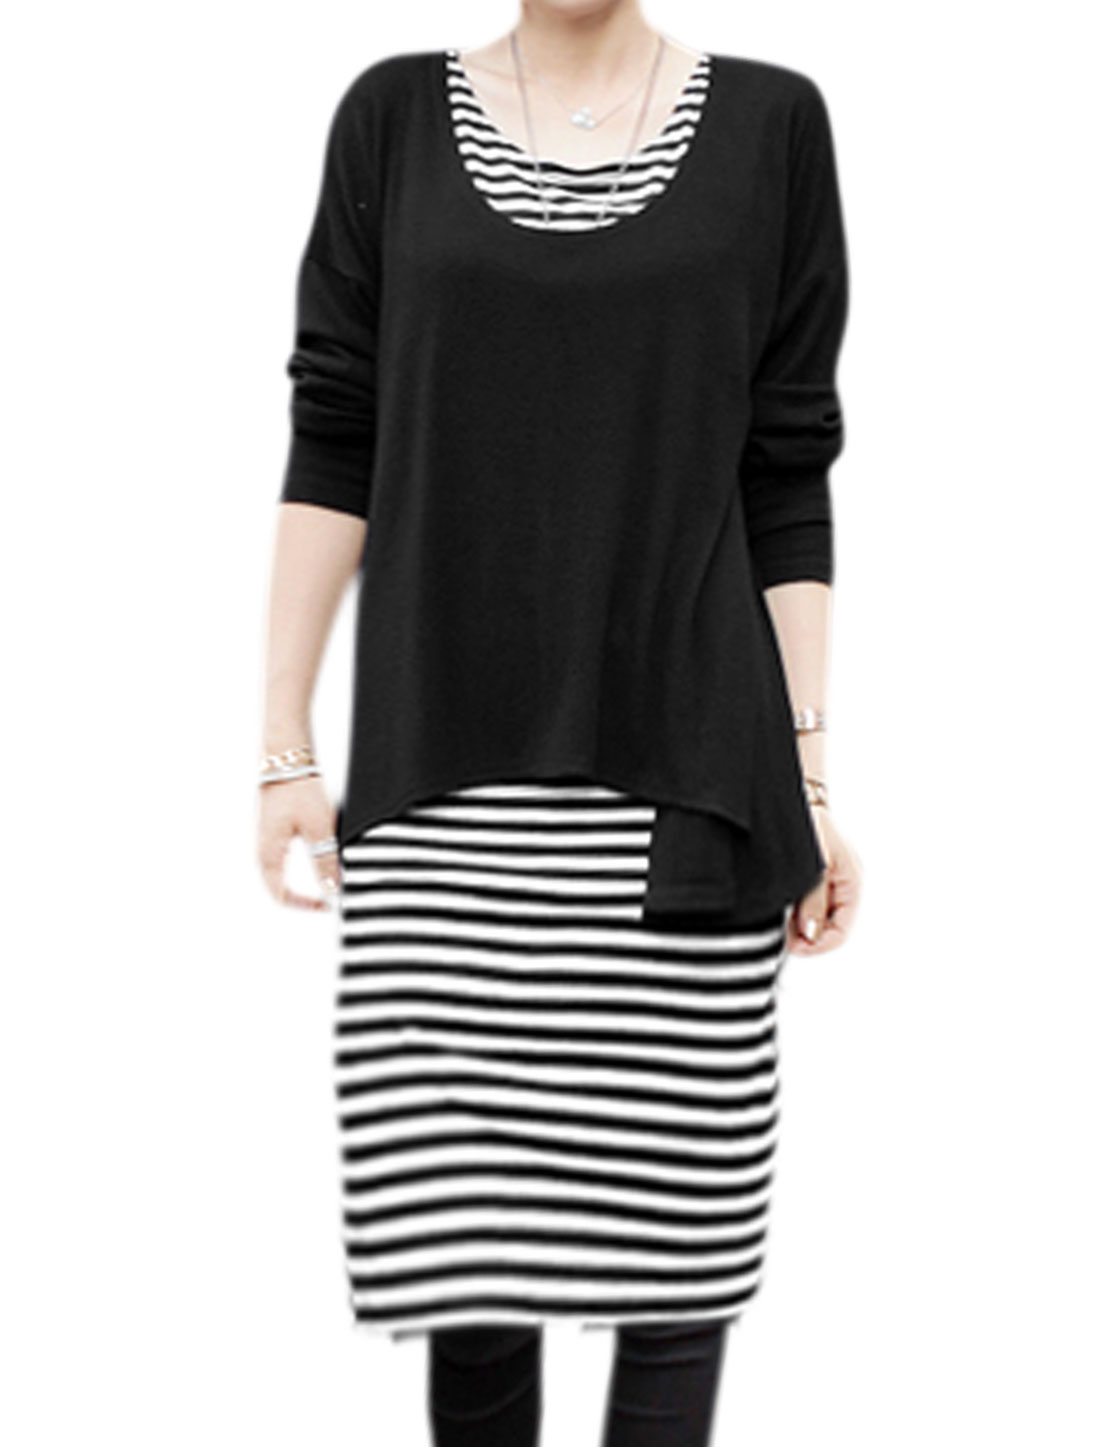 Ladies Long Batwing Sleeves Loose Fit Top w Stripe Midi Dress Sets Black S